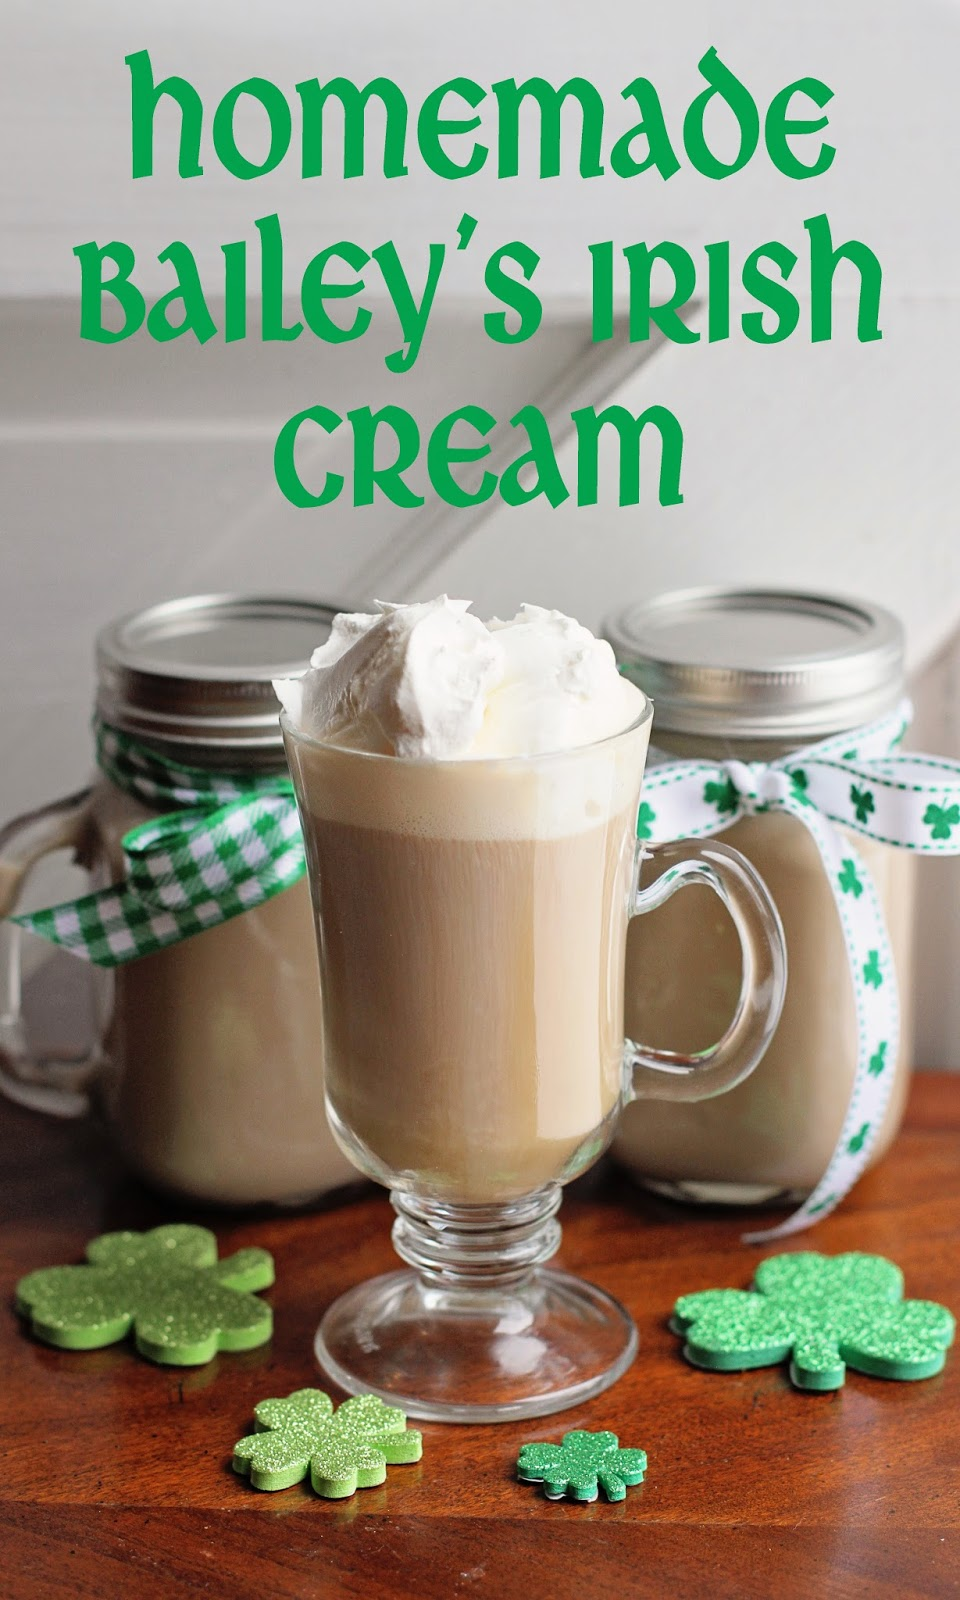 ... from the Law: Lucky (Recipe) Linkup - Homemade Bailey's Irish Cream